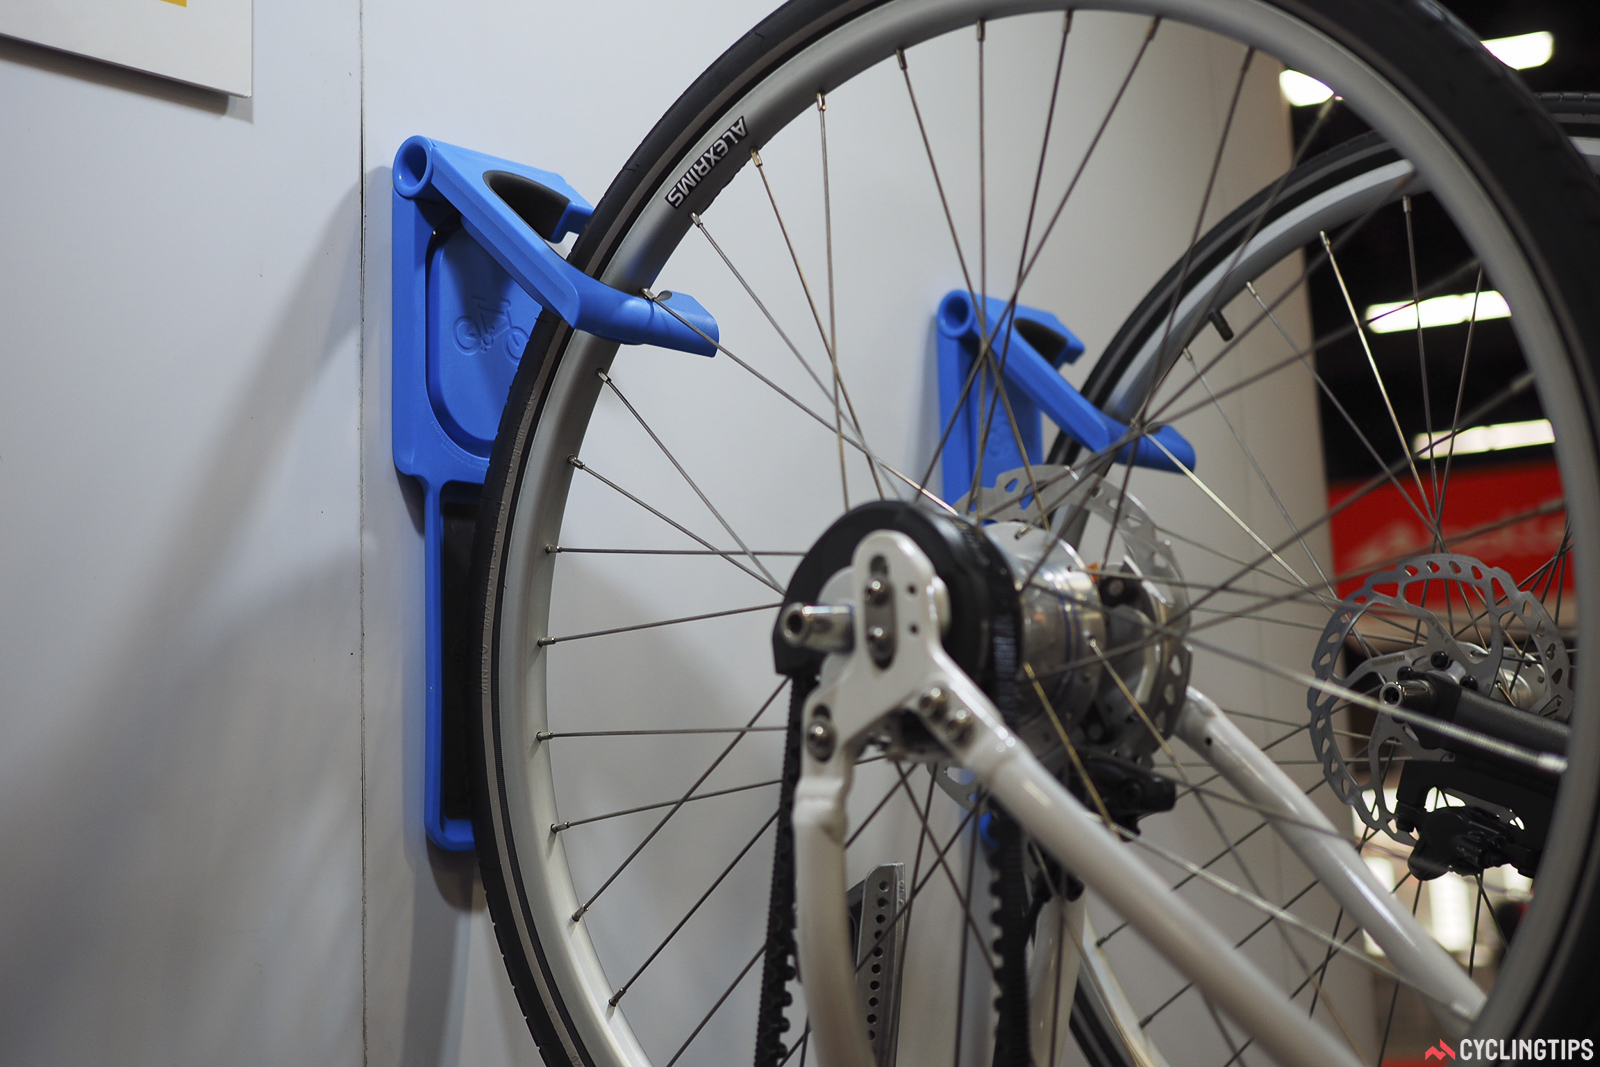 Cycloc's new UK-made Endo wall mount hangs bikes from either wheel, with a hollow hinge big enough for a U-lock. A matching pad down below keeps the other wheel from scuffing the wall. Retail price is US$70.